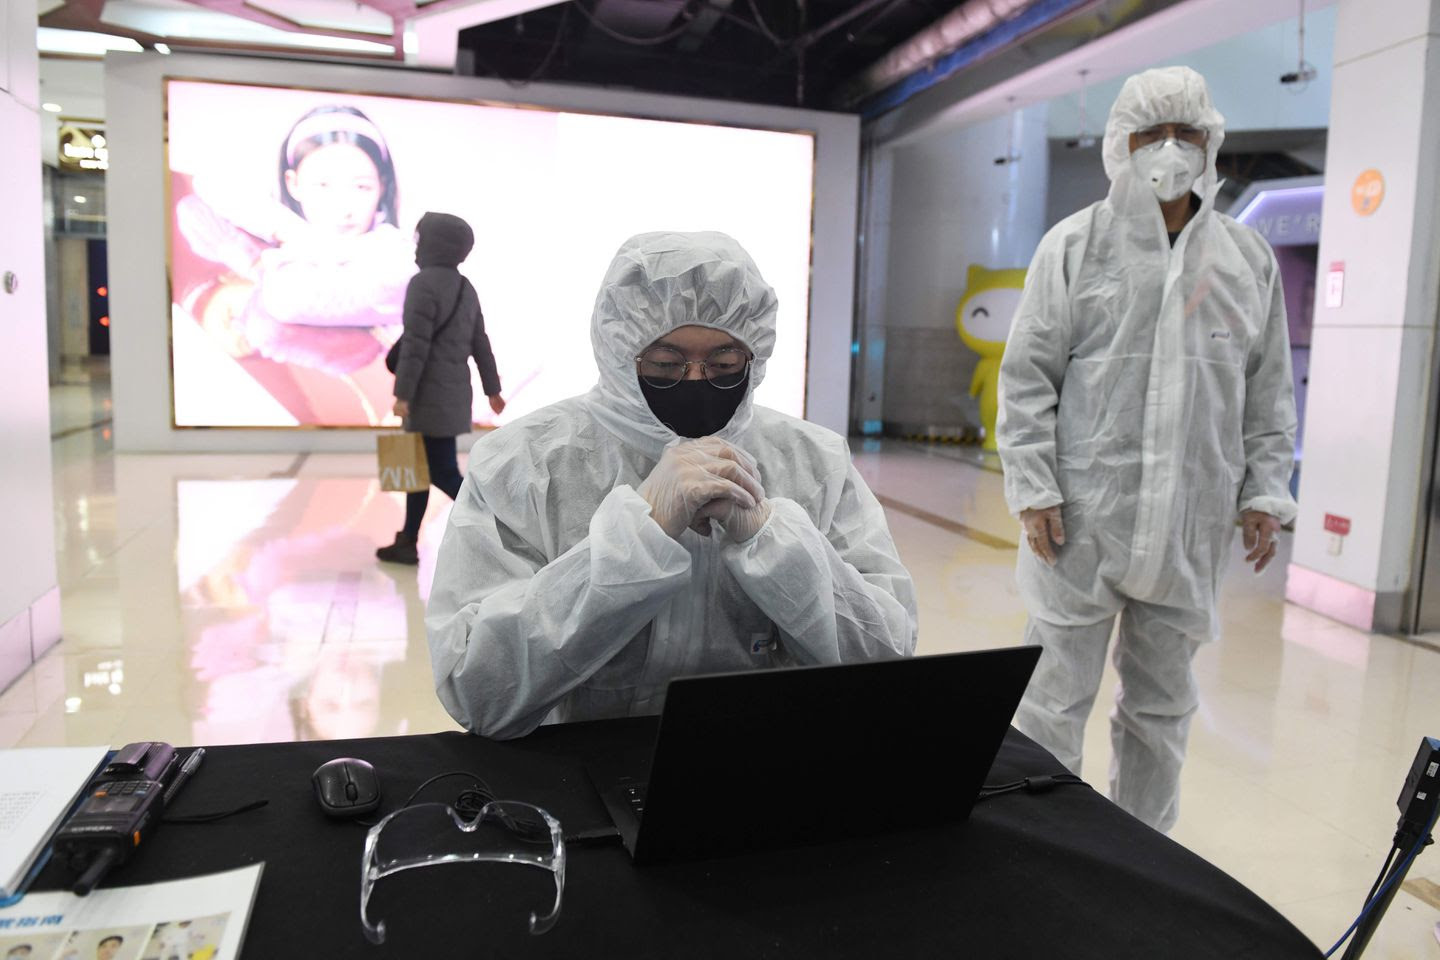 Security guards wore hazmat suits as they checked the temperature of arriving customers at a shopping mall in Beijing on Thursday.